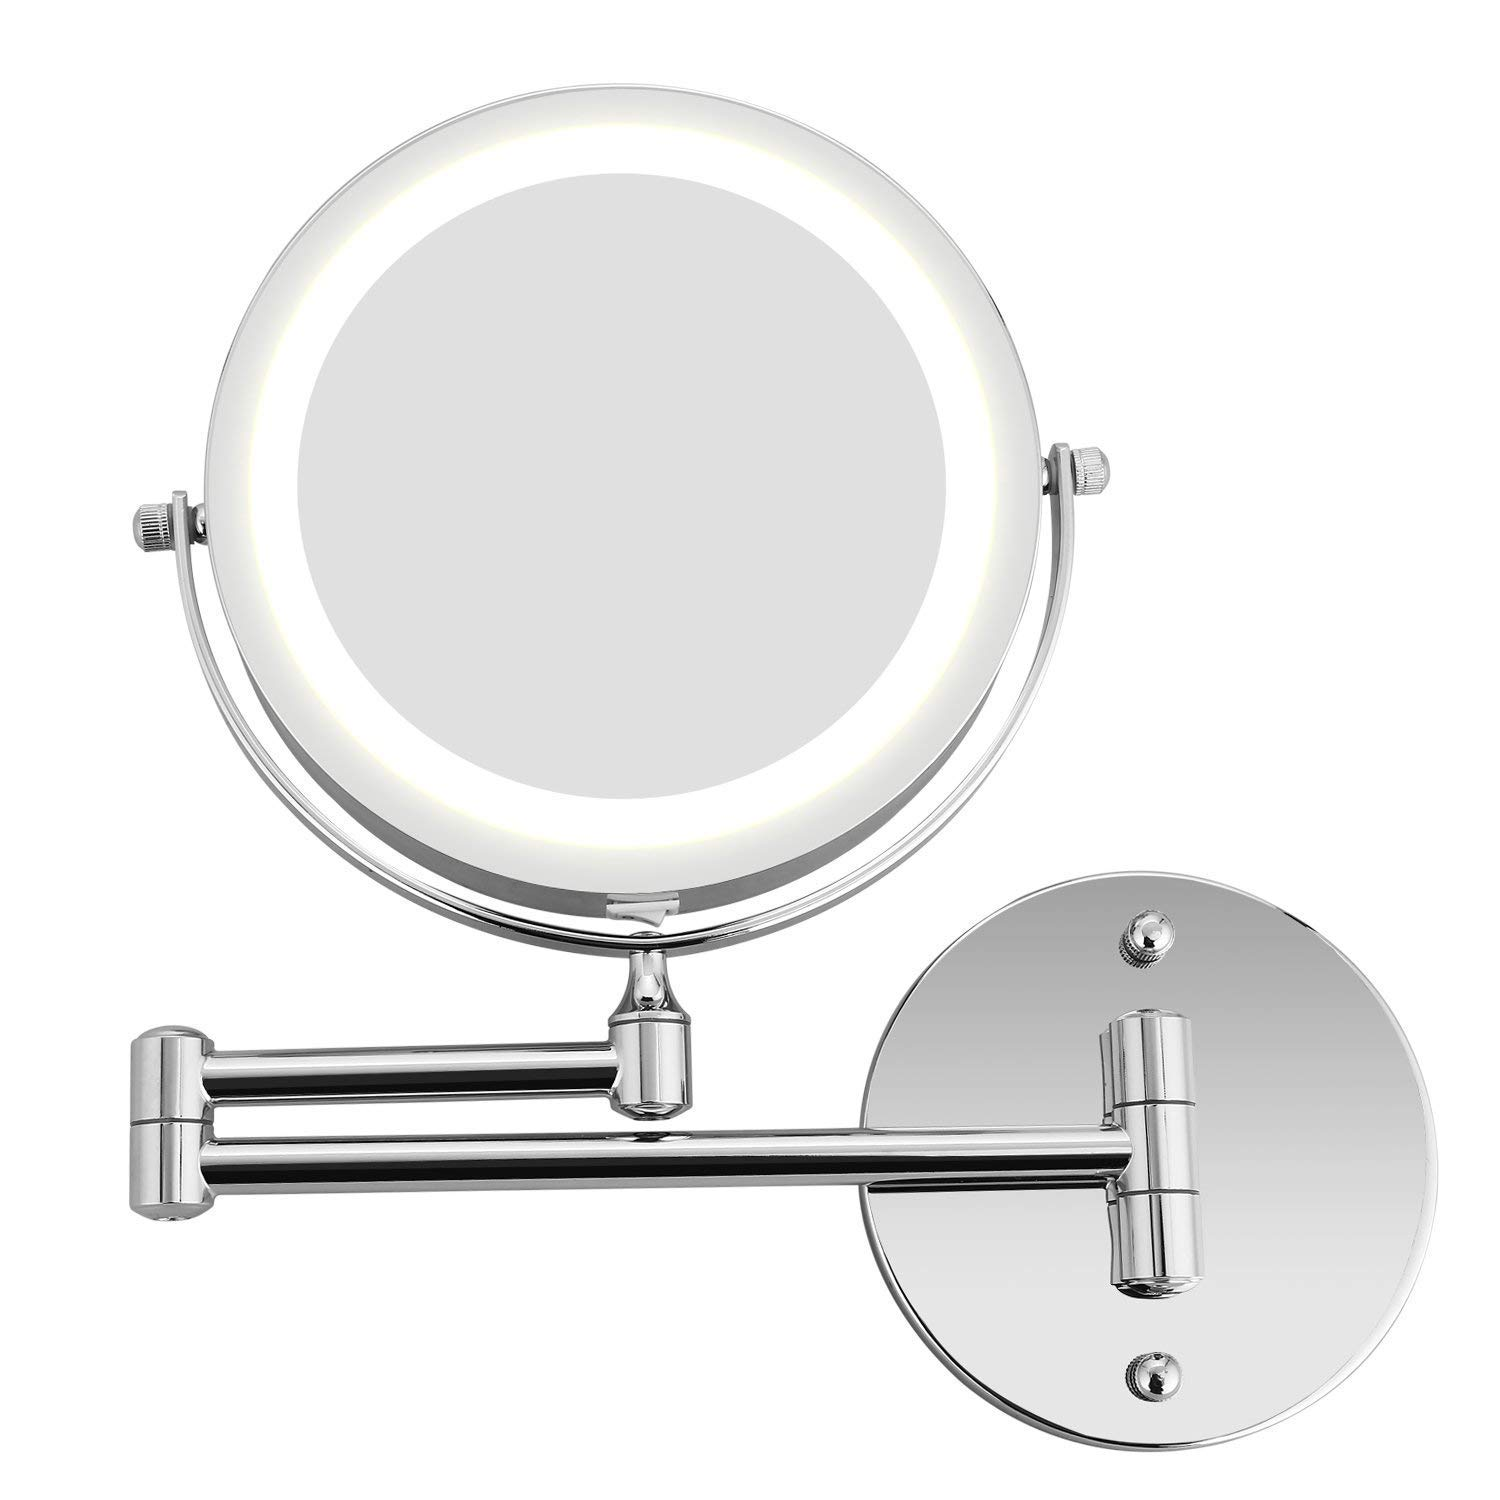 Bazal Makeup Mirror Wall Mount 5X Magnifying Mirror LED Lighted Cosmetic Vanity Mirror for Bathroom Two Sided Face Mirror, Powered by 4 x AAA Batteries (not Included)